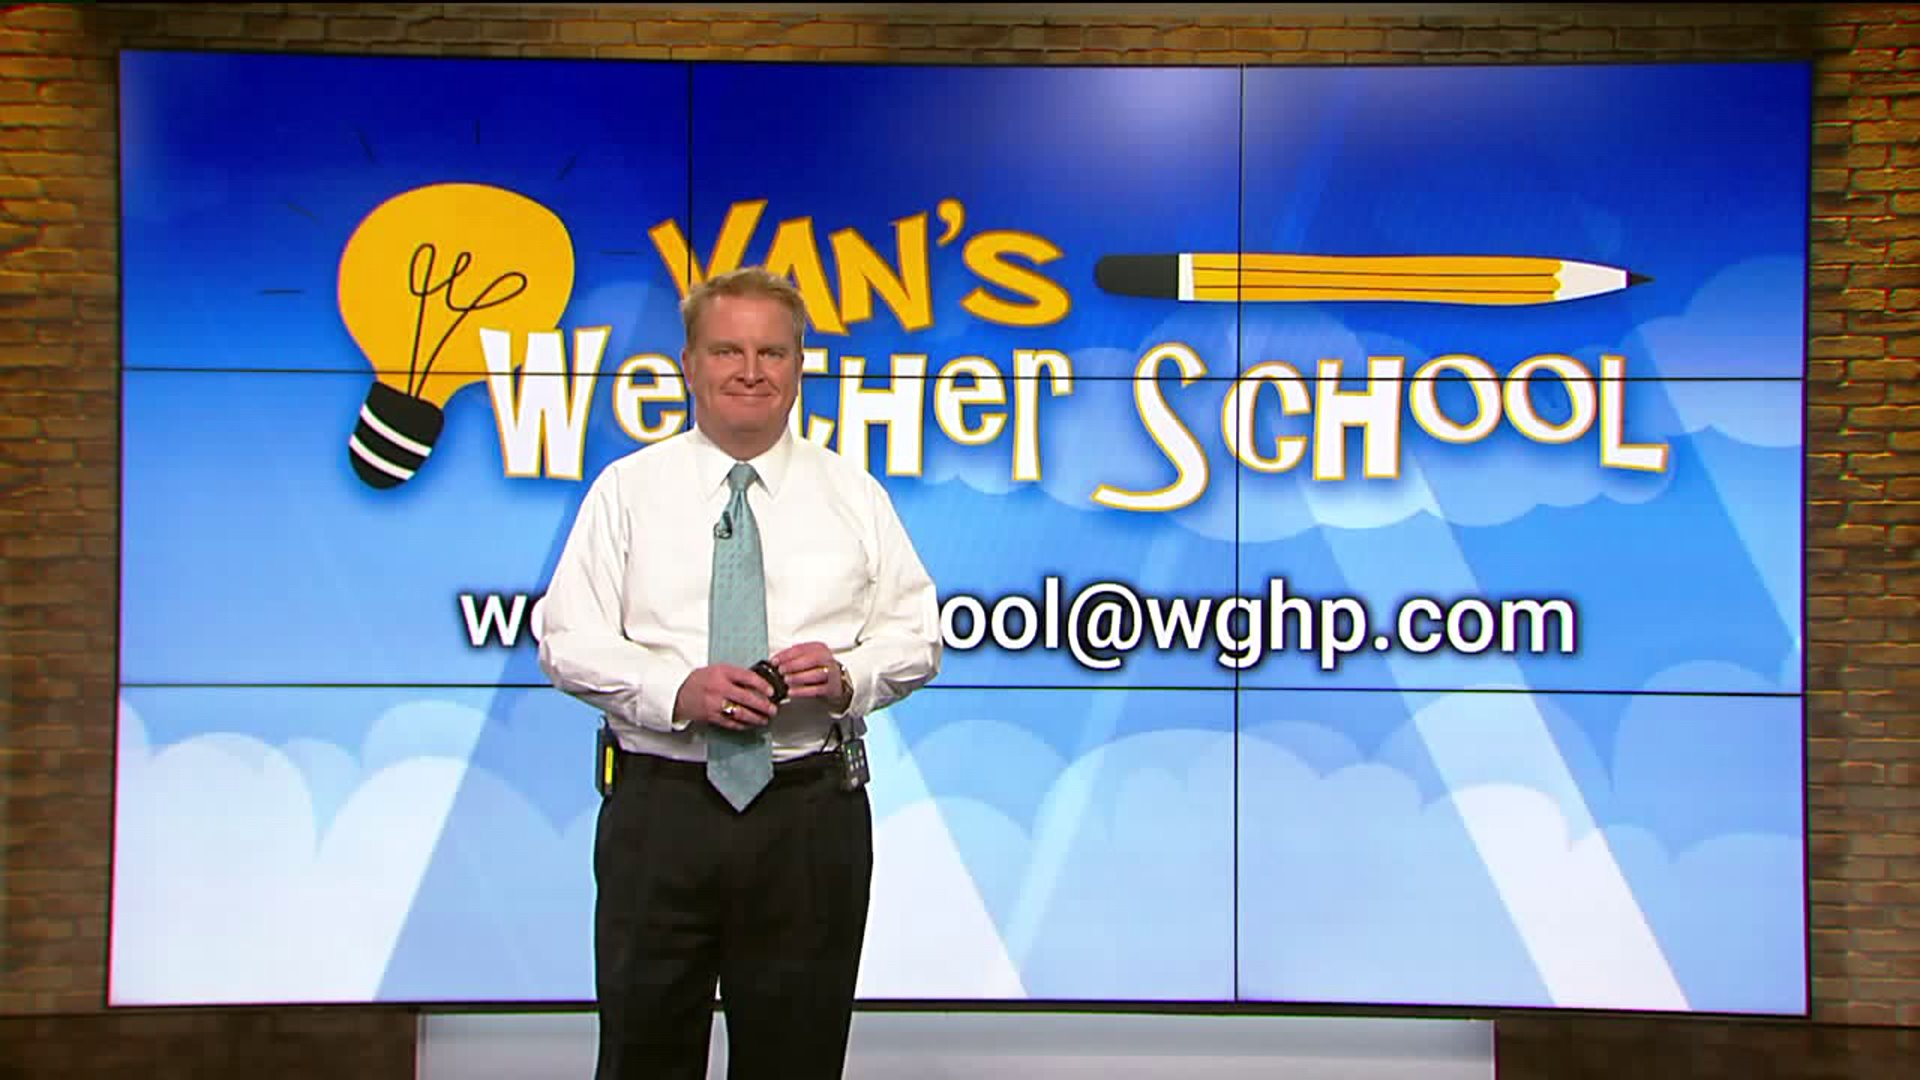 Van's Weather School